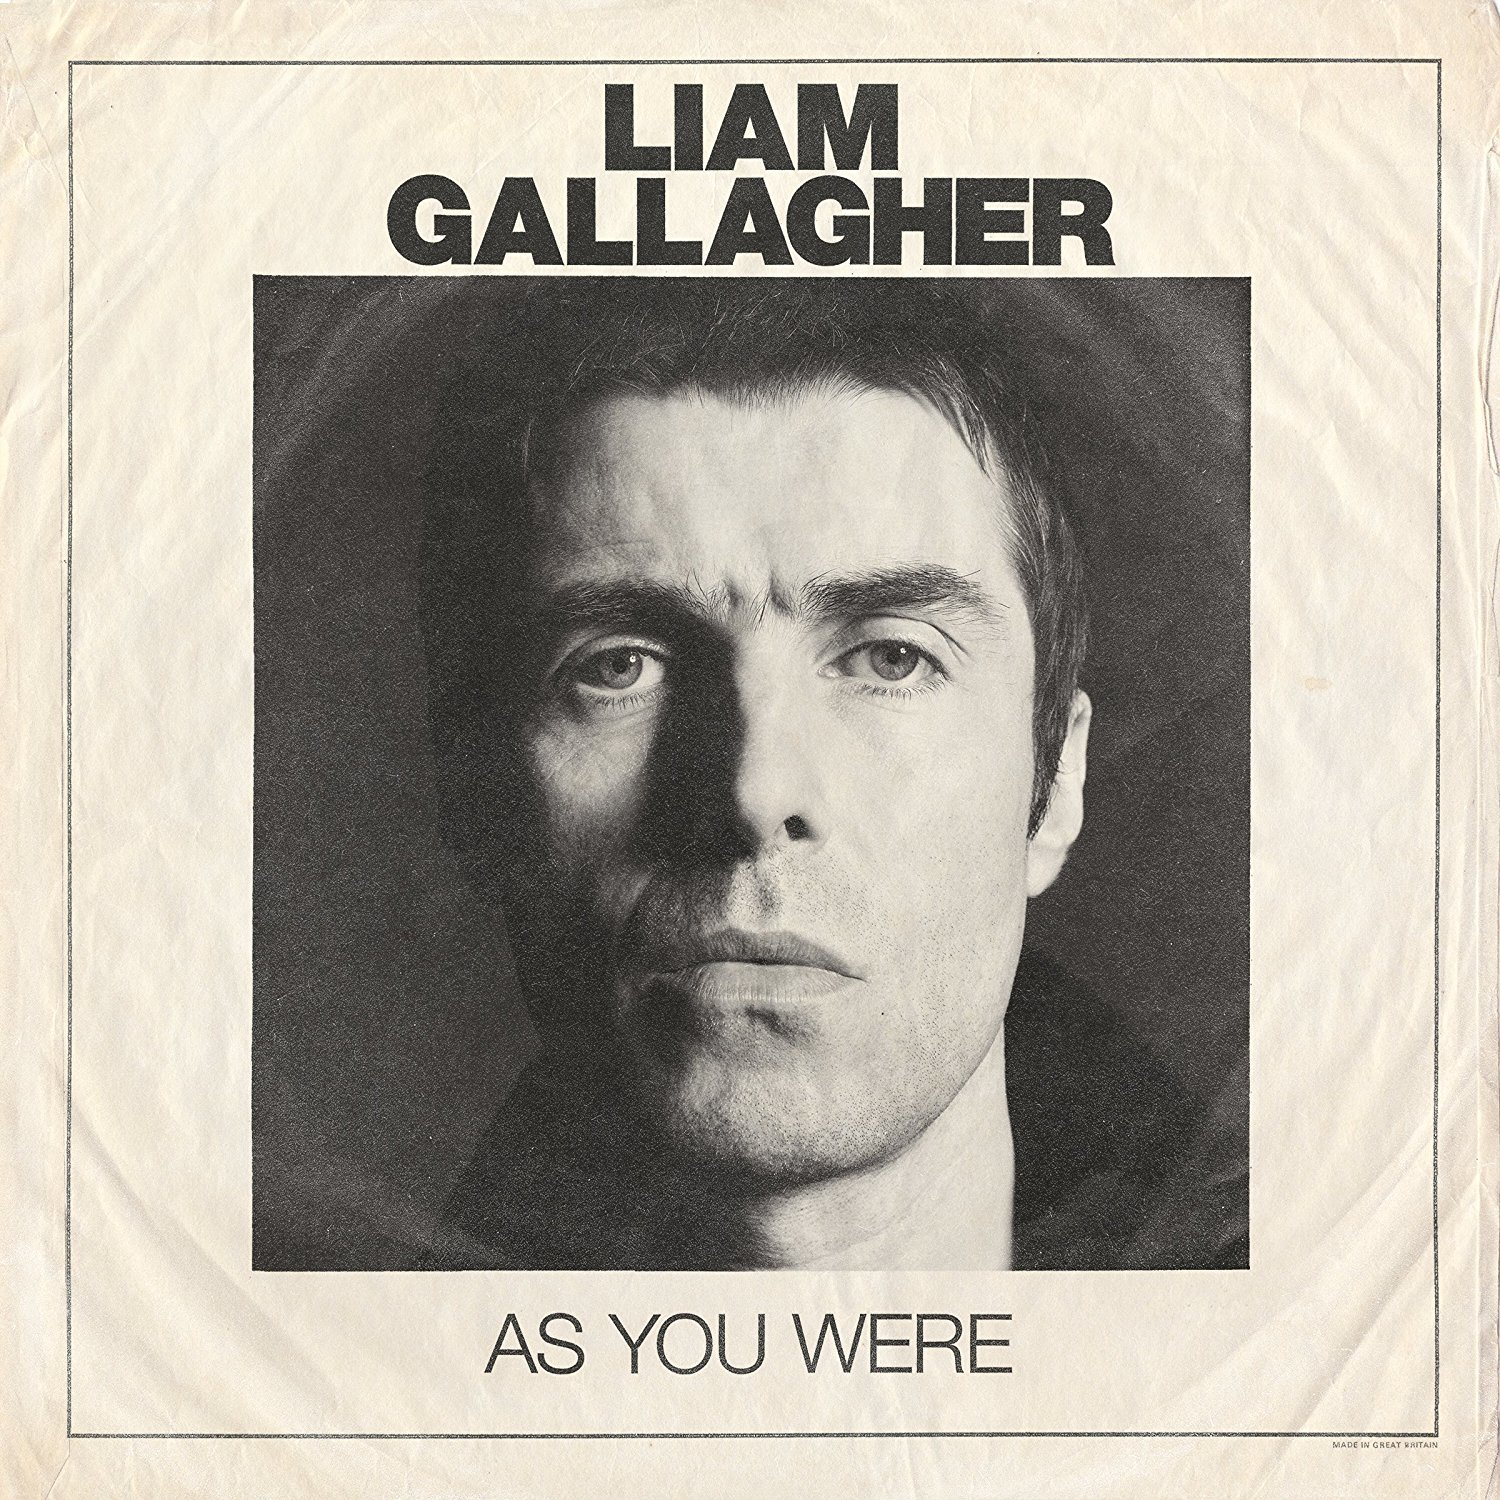 GALLAGHER, LIAM: As You Were